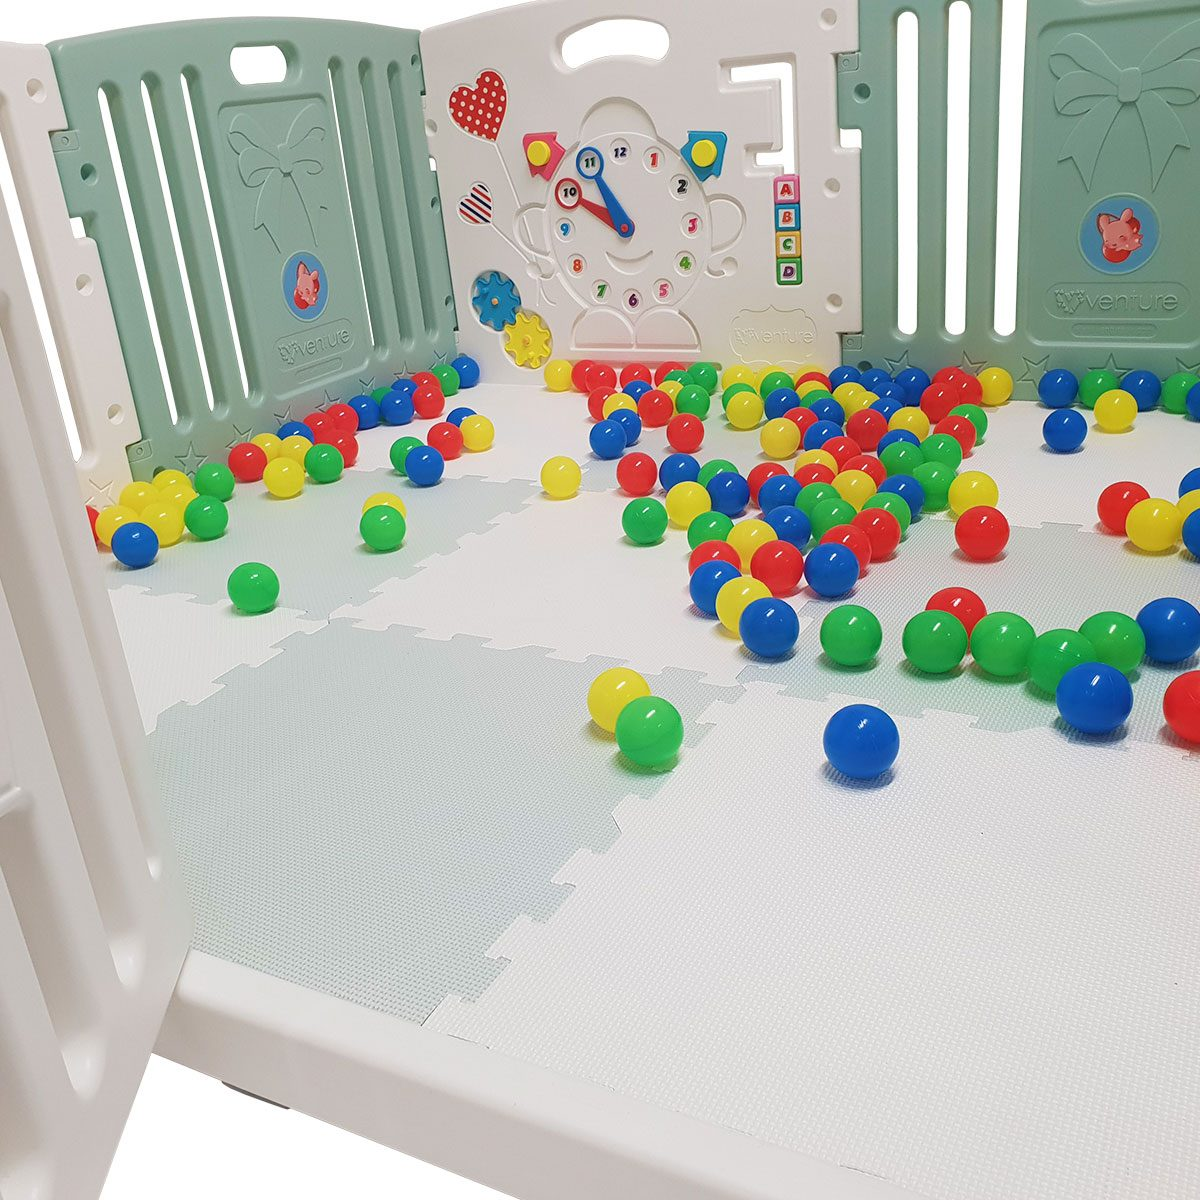 All Stars DUO baby playpen with coloured play mats and balls.